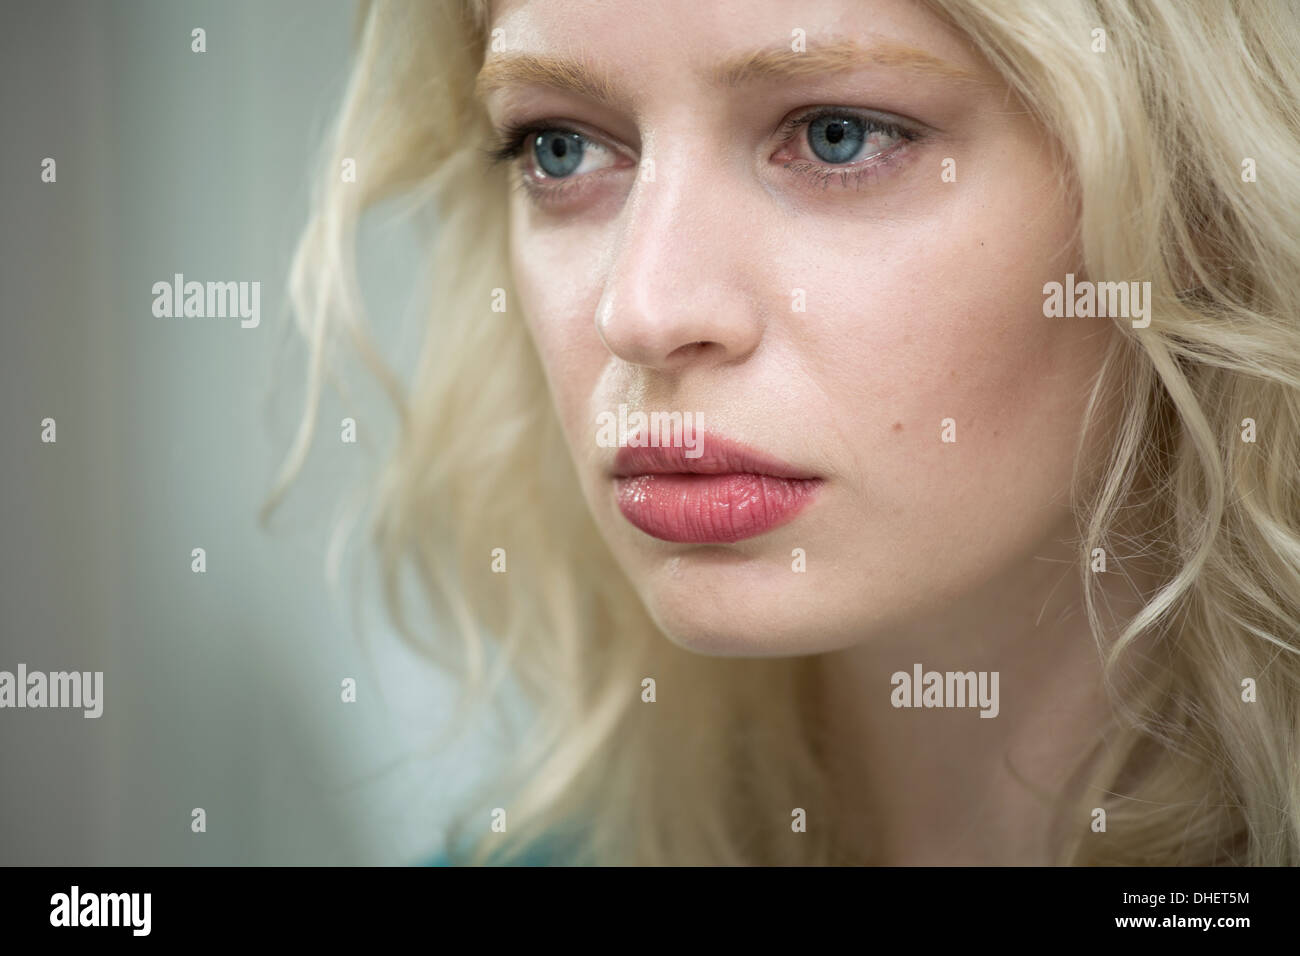 Young woman looking sad - Stock Image